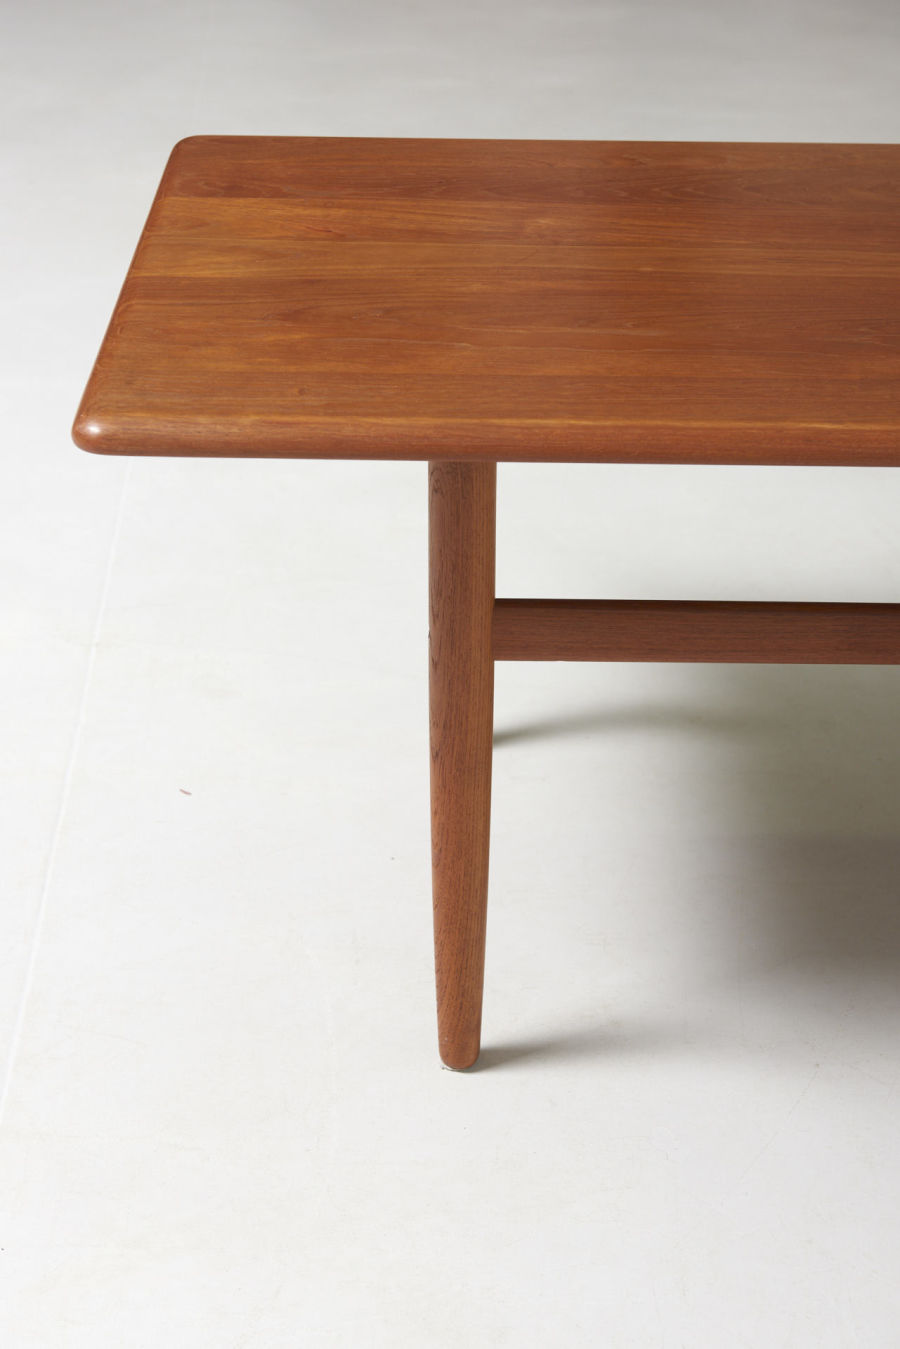 modestfurniture-vintage-2349-danish-low-table-teak06